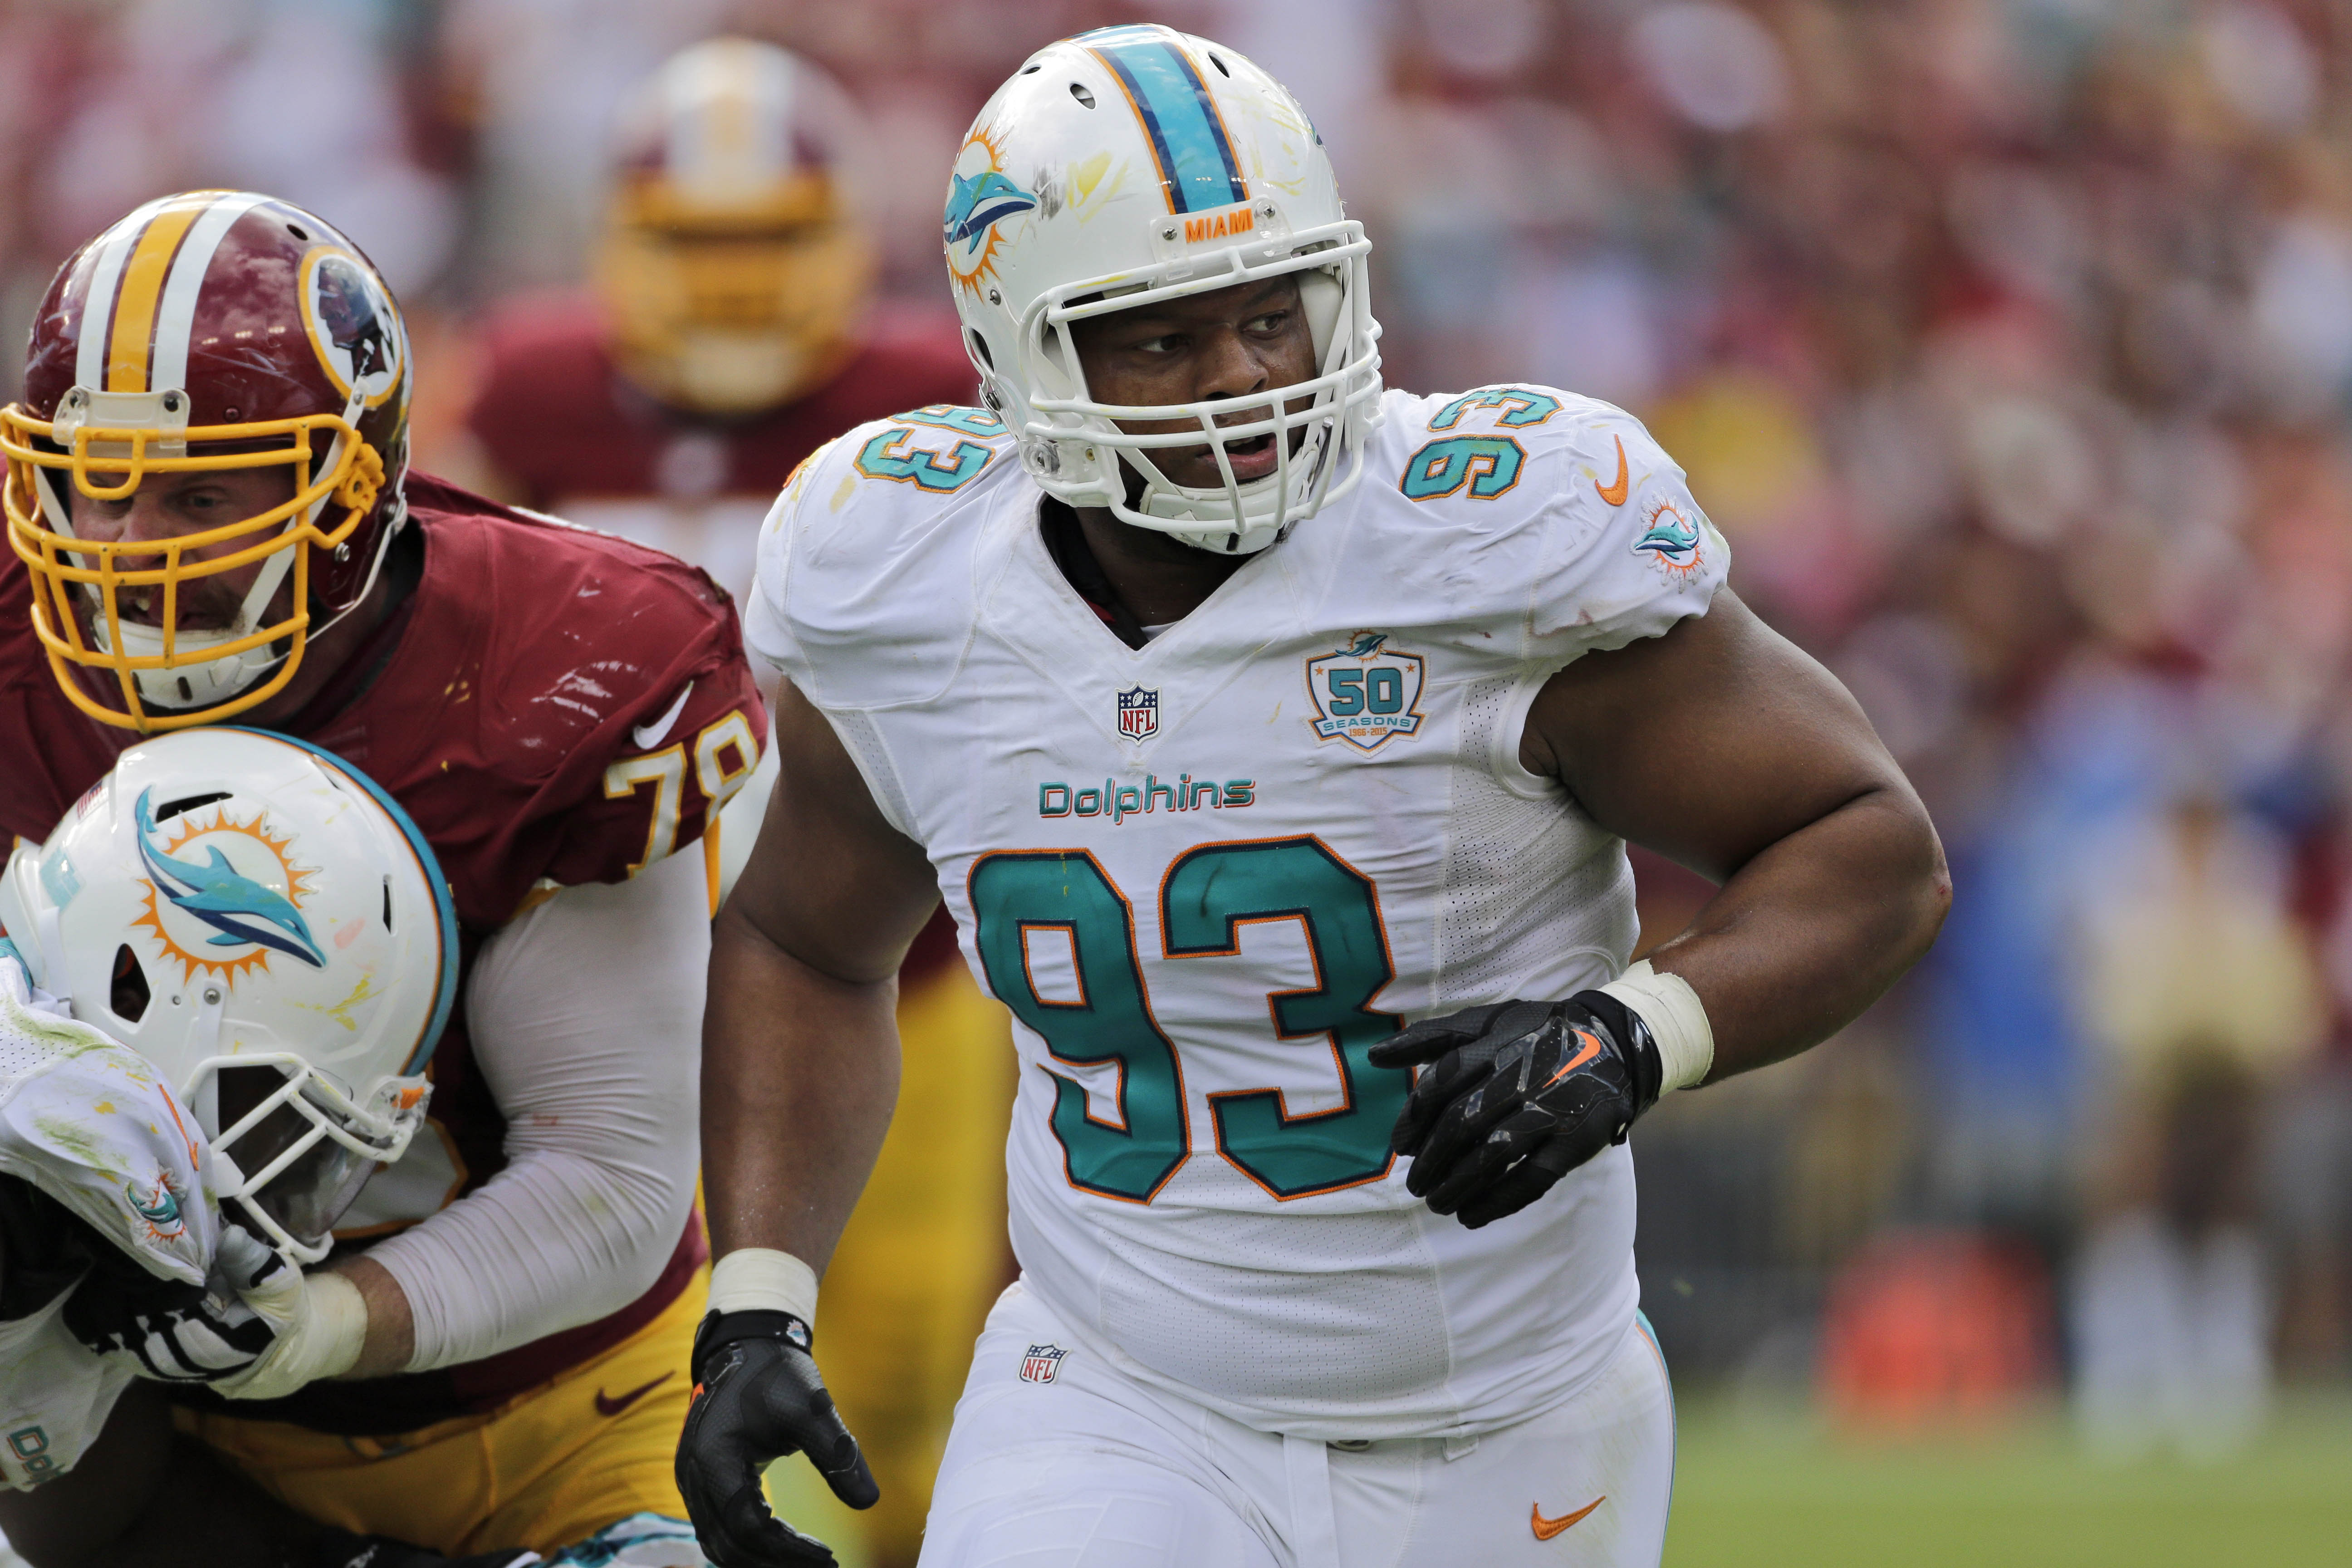 FILE - In this Sunday, Sept. 13, 2015 file photo, Miami Dolphins defensive tackle Ndamukong Suh (93) rushes during the second half of an NFL football game against the Washington Redskins in Landover, Md. The 2015 NFL season has had plenty of flops such as